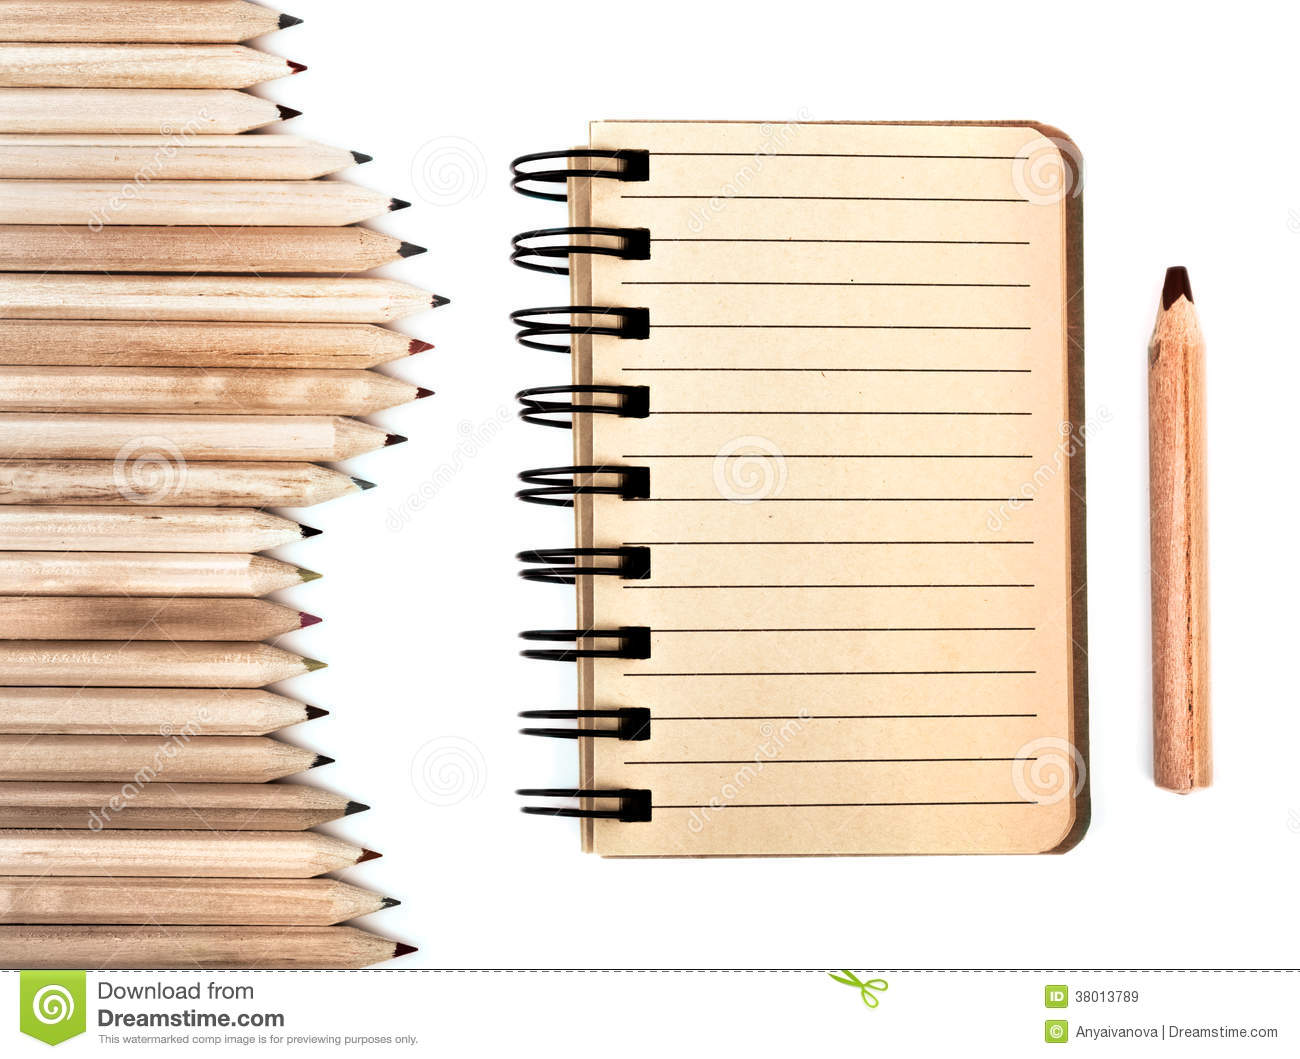 Stationary Made From Sustainable Wood Royalty Free Stock